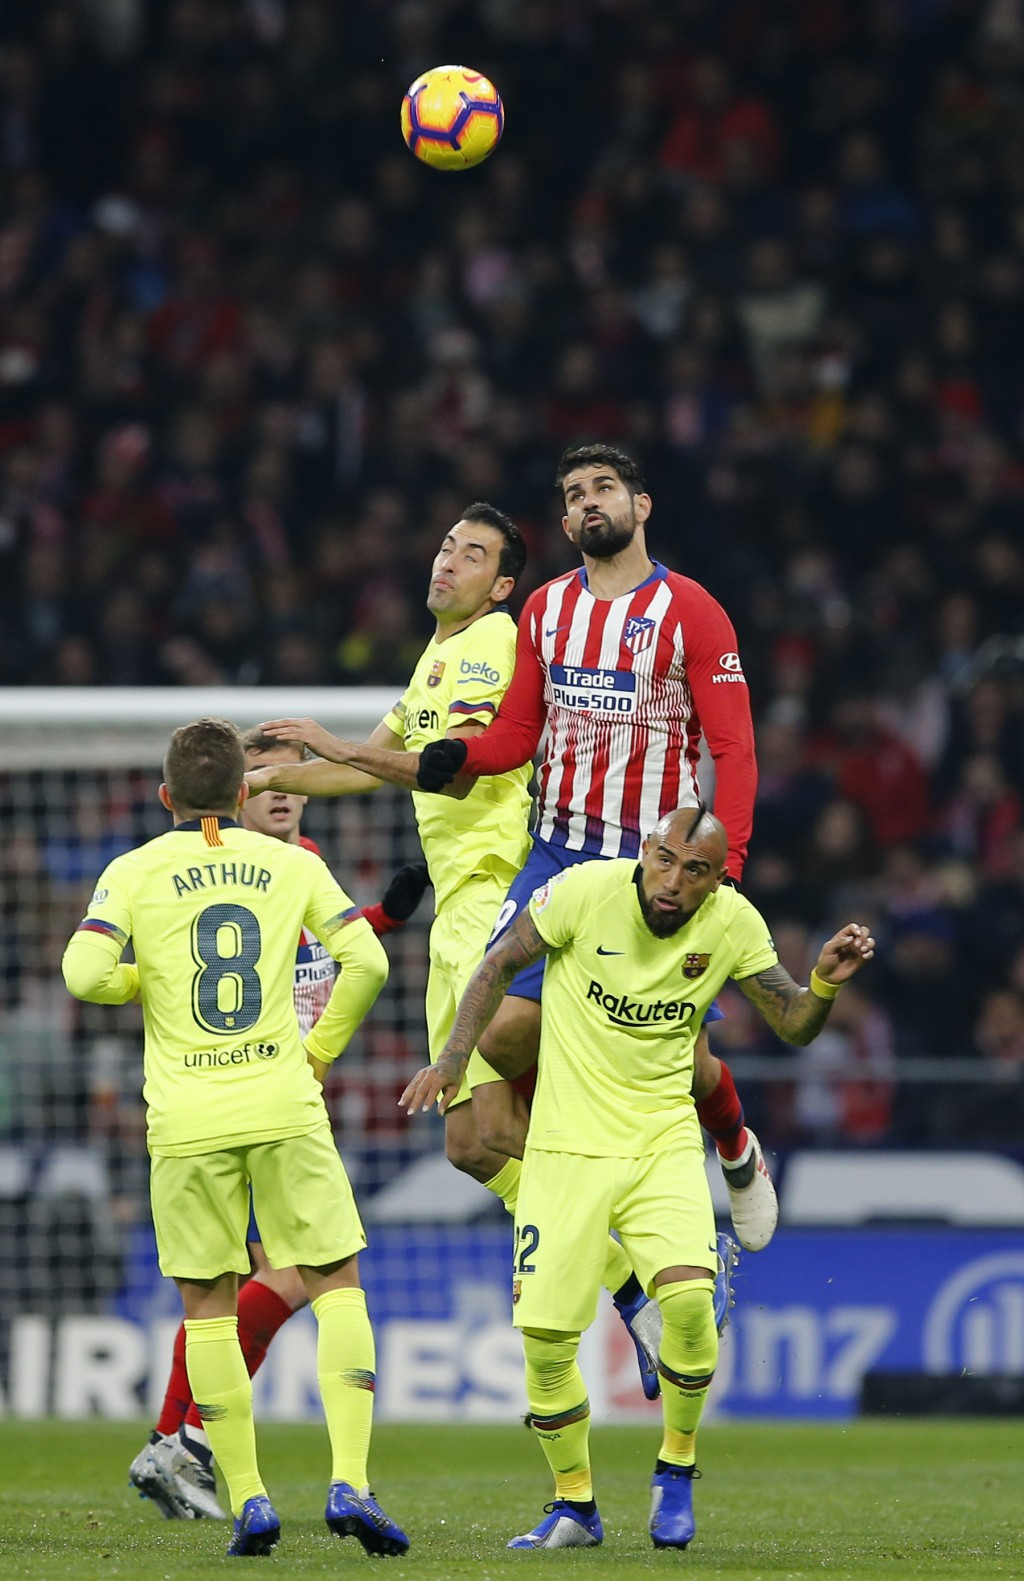 Atletico's Diego Costa, right, jumps for the ball with Barcelona's Sergio Busquets during a Spanish La Liga soccer match between Atletico Madrid and F